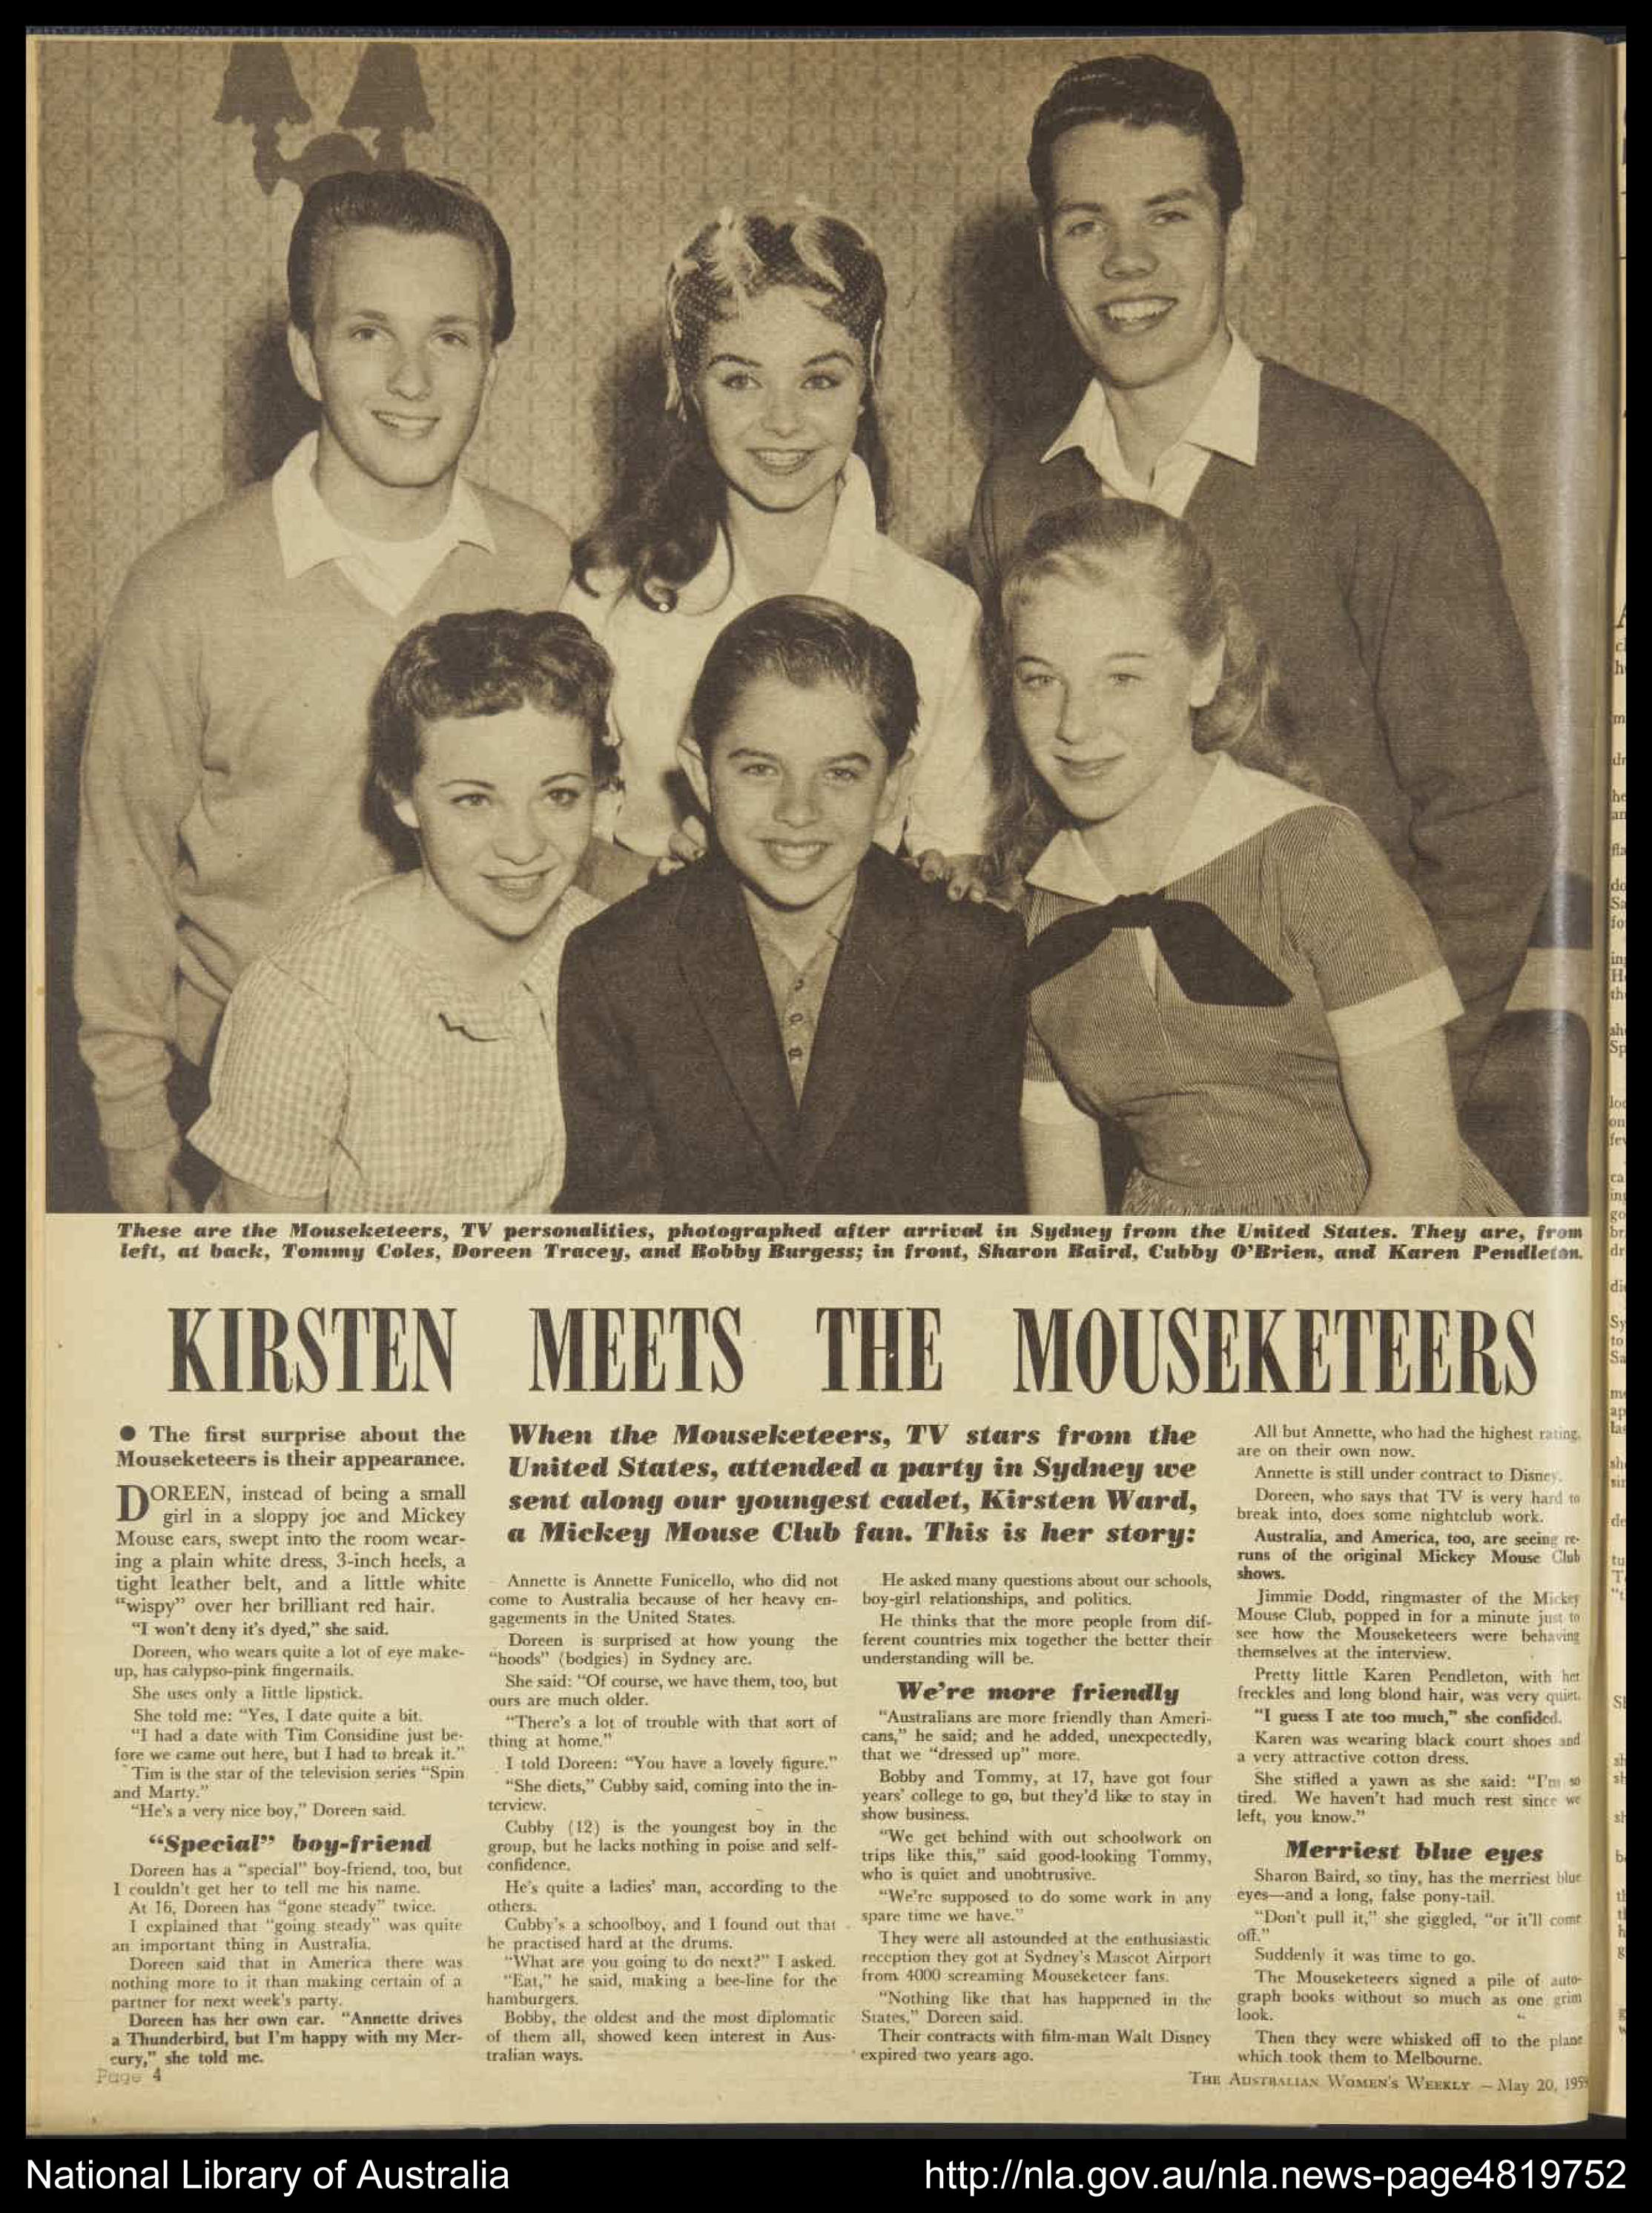 Photo of the Australian Women's Weekly article including a photo of the Mouseketeers